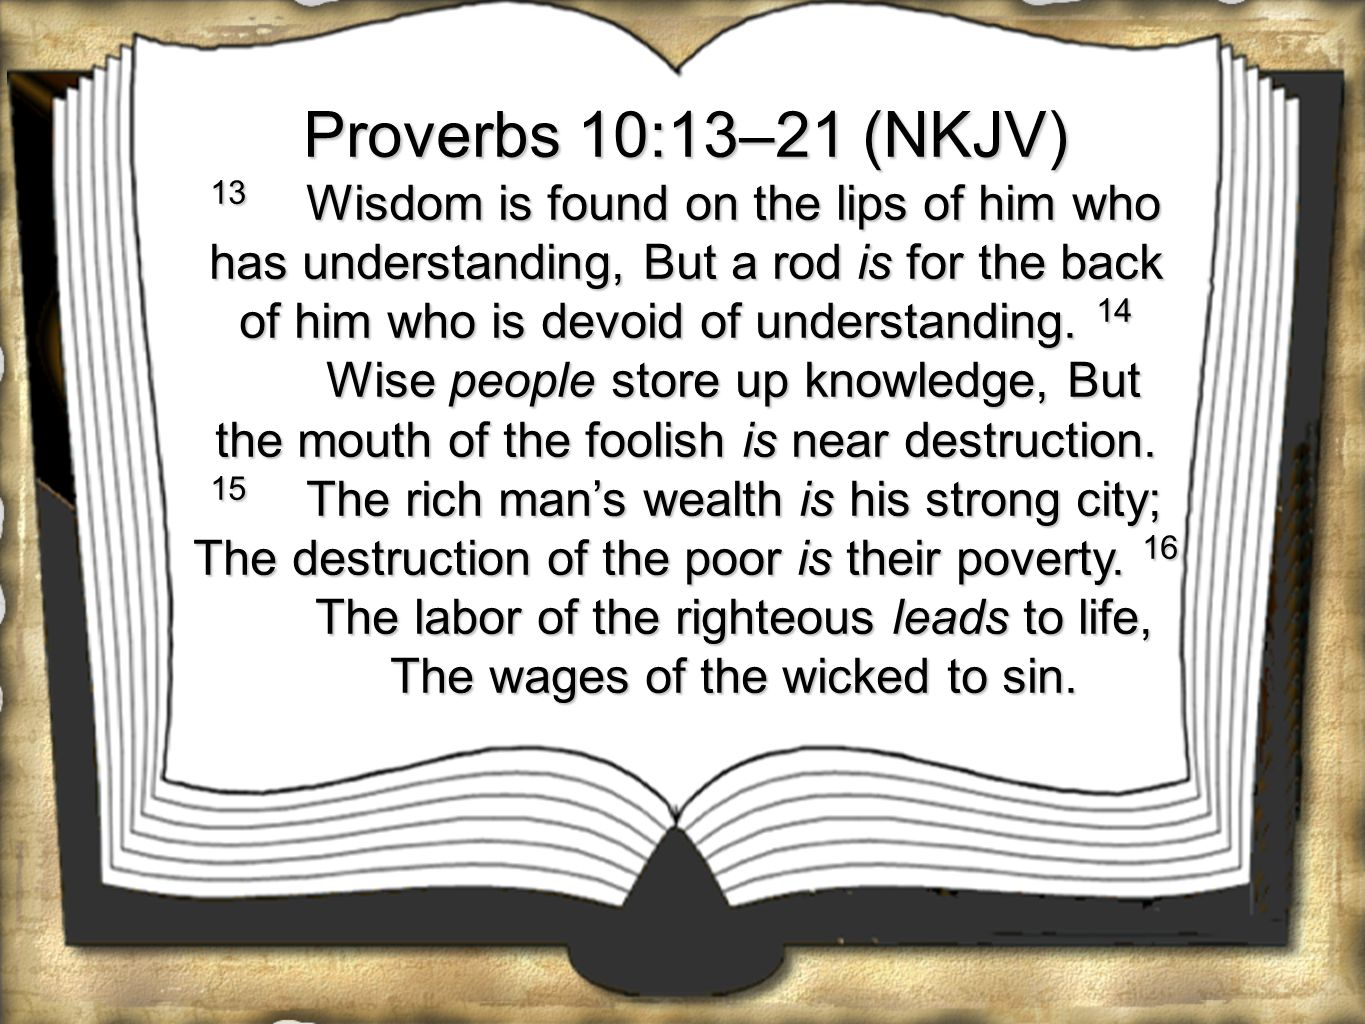 Proverbs 10:13–21 (NKJV) 13 Wisdom is found on the lips of him who has understanding, But a rod is for the back of him who is devoid of understanding.